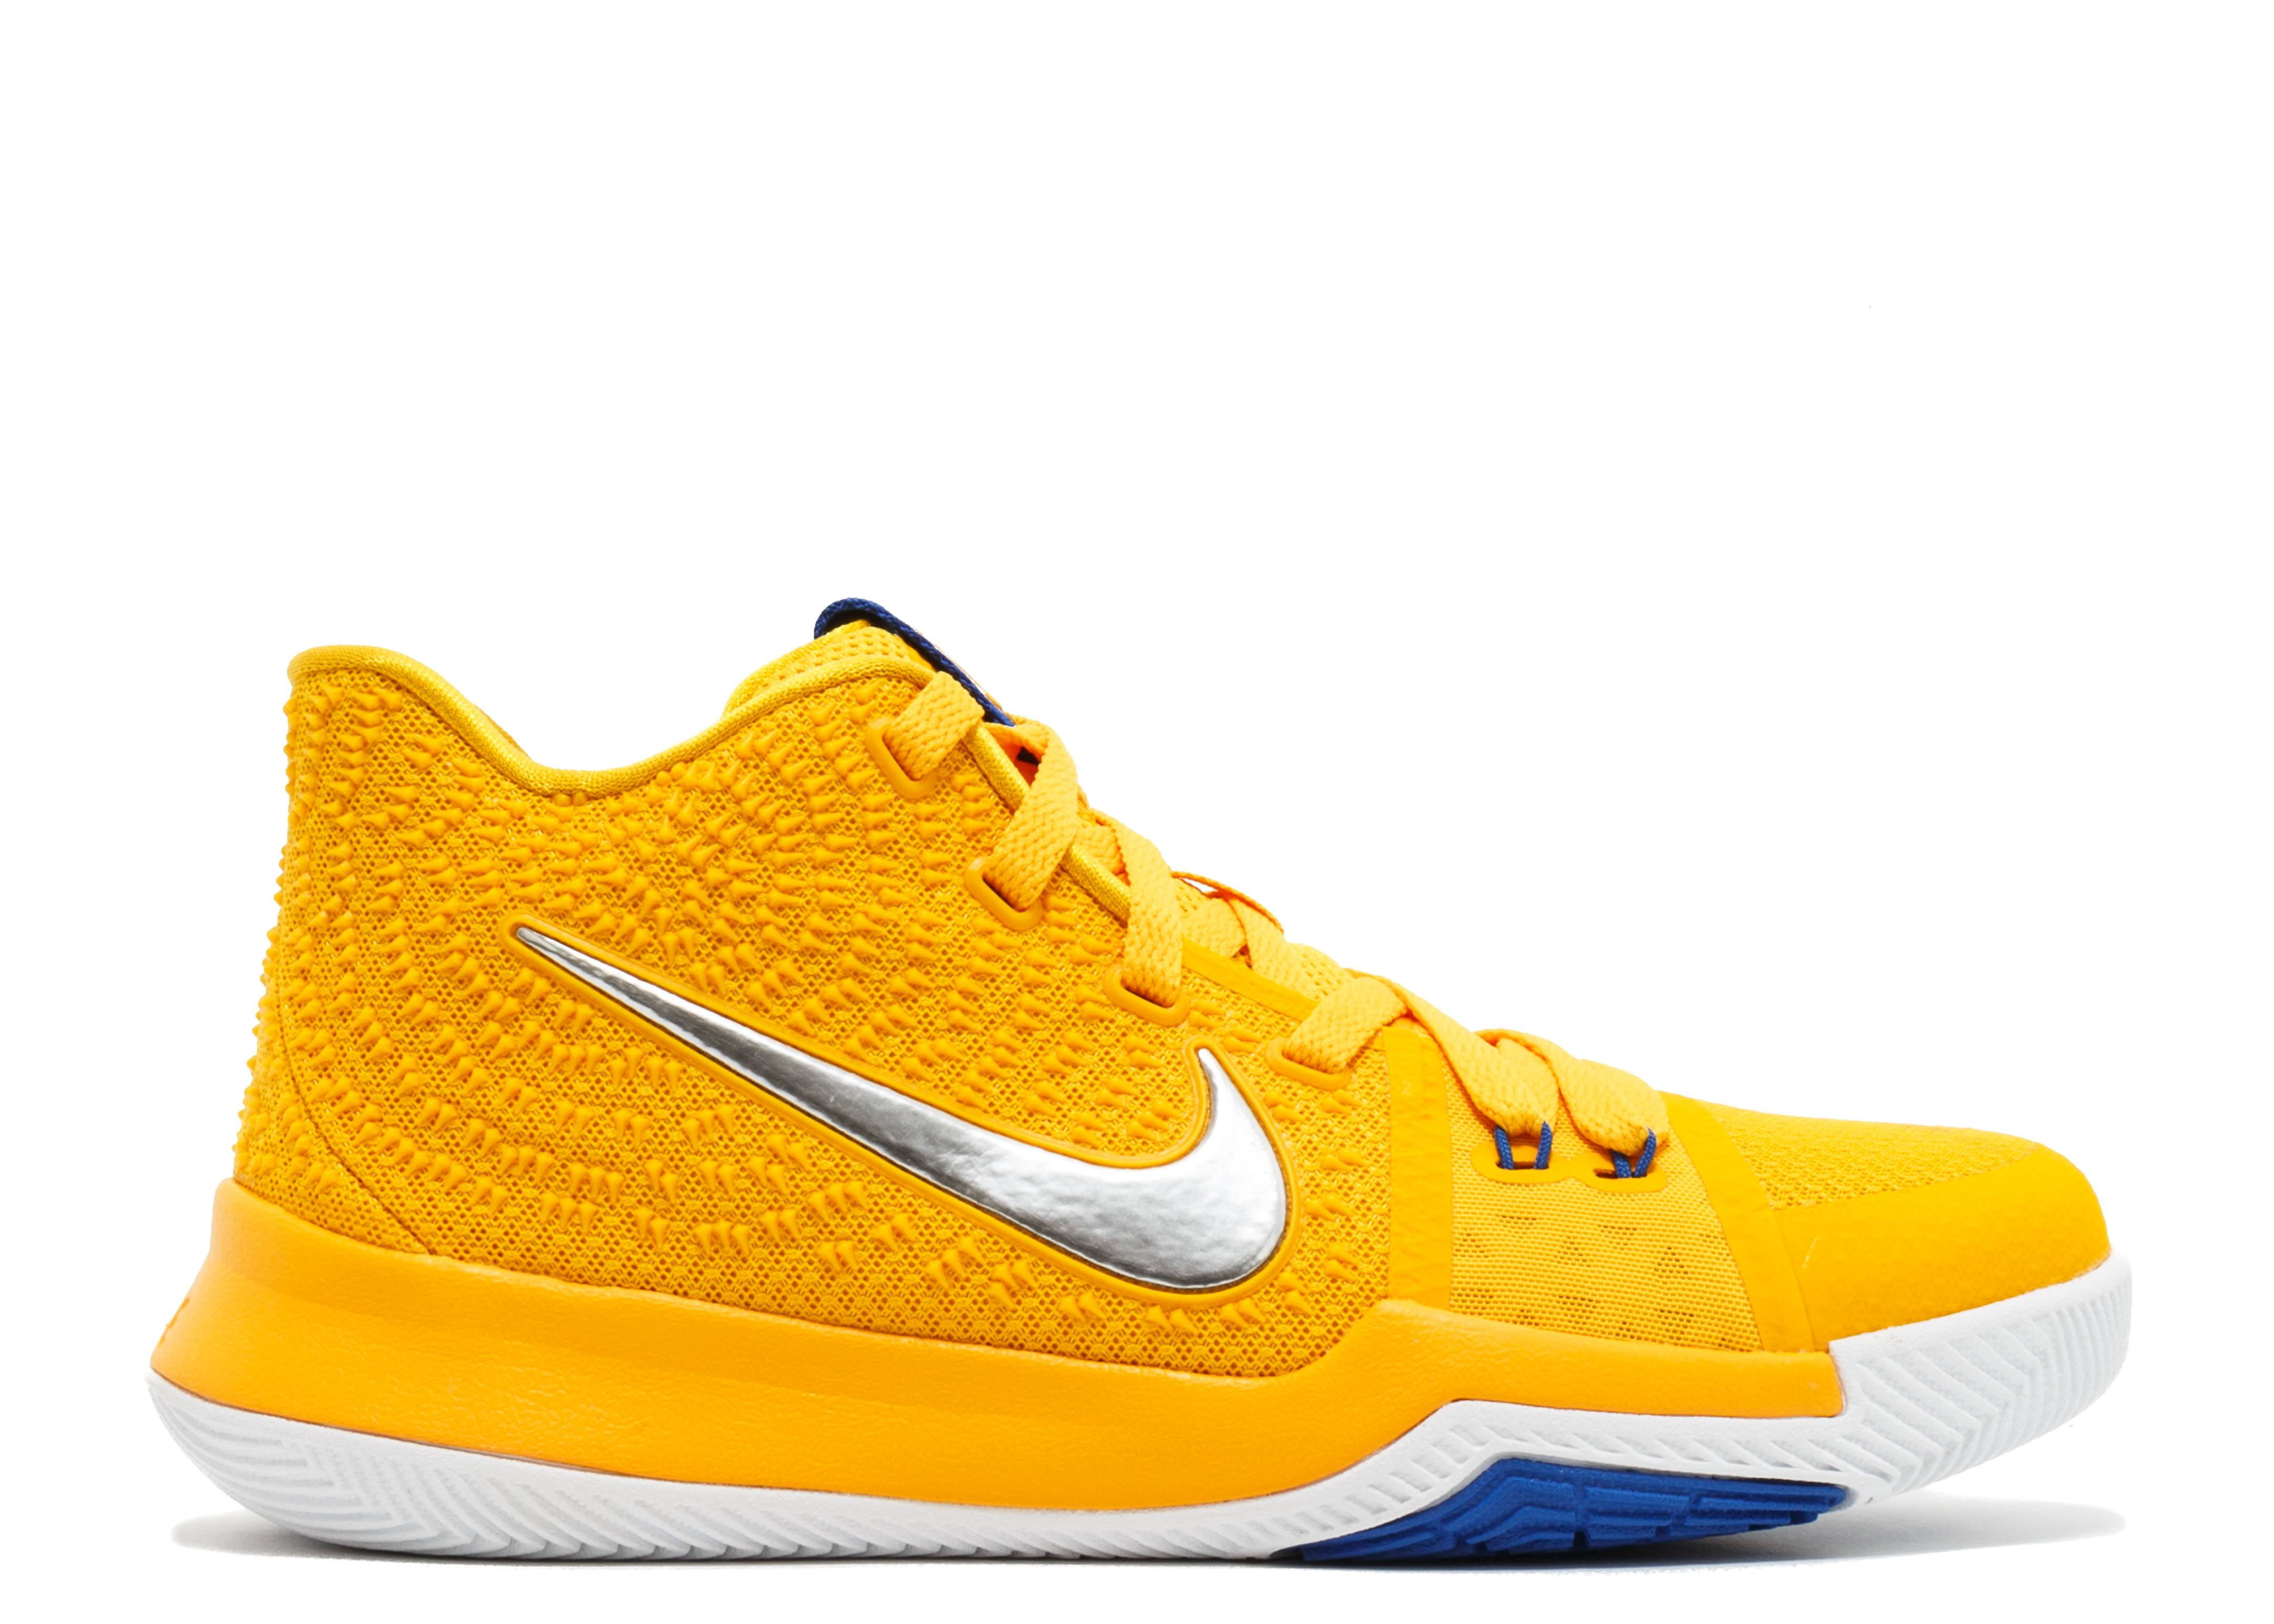 huge discount 5a25a 33703 Kyrie 3 (gs) - Nike - 859466 791 - university gold chrome-white ...